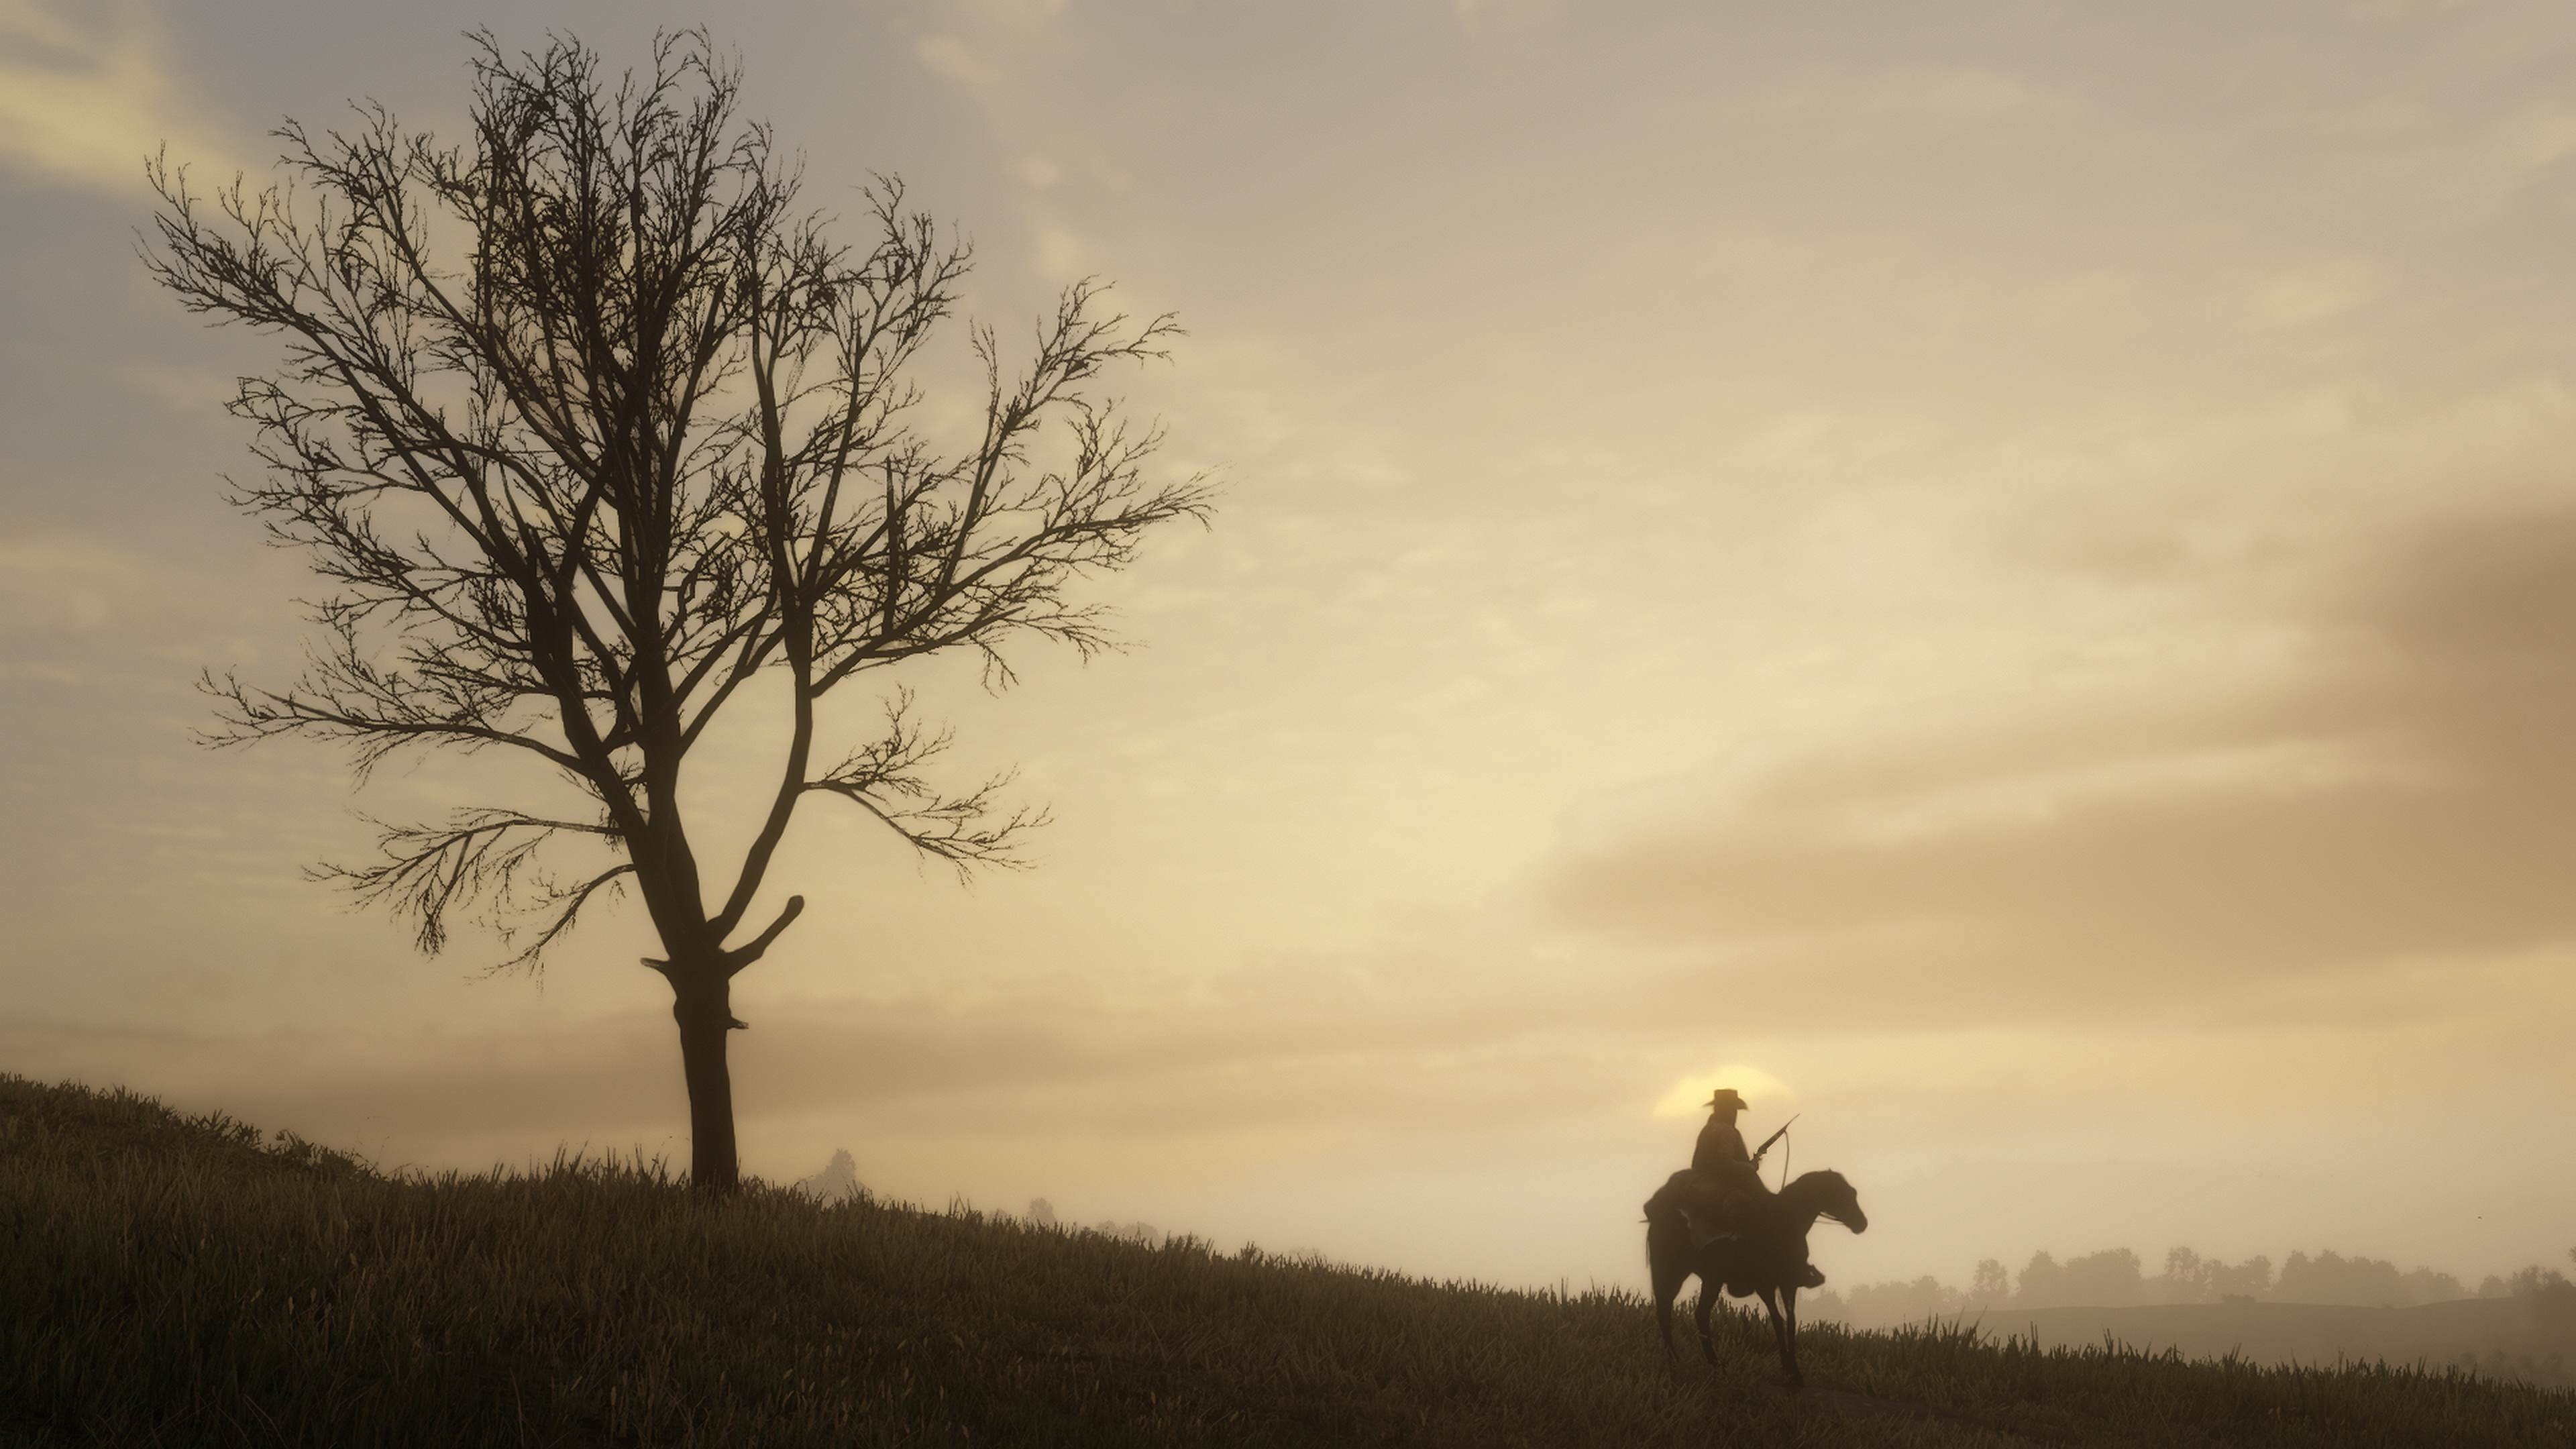 2018 Red Dead Redemption 2 PS4 4k, HD Games, 4k Wallpapers